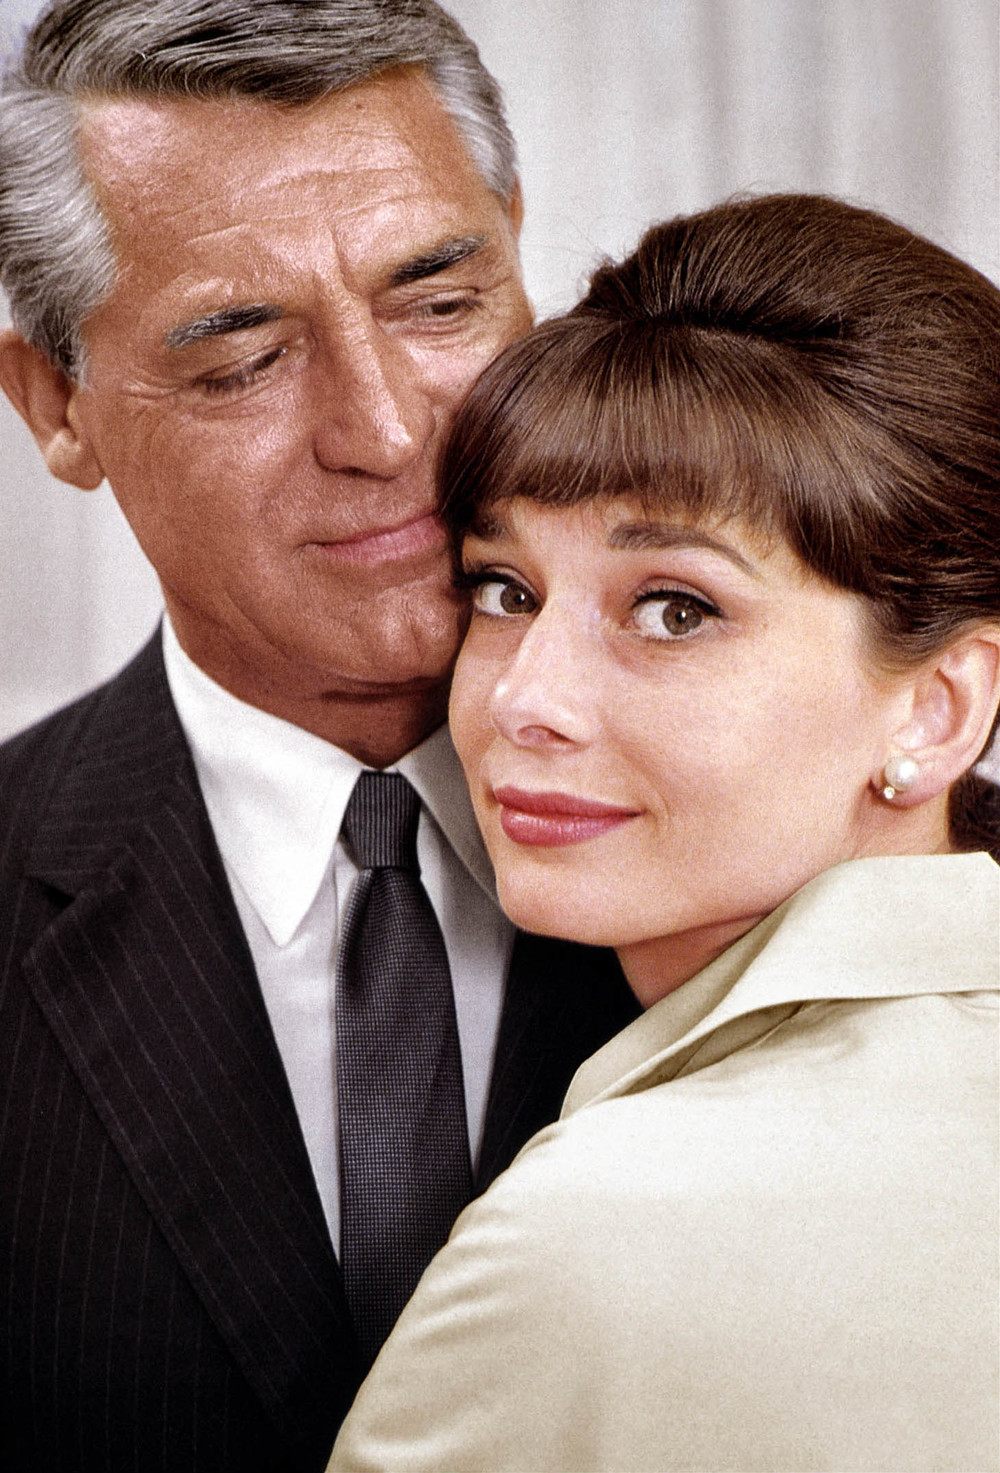 """You smell marvellous, darling!"" Devotees of unisex scent Acqua di Parma Colonia, Cary Grant and Audrey Hepburn."